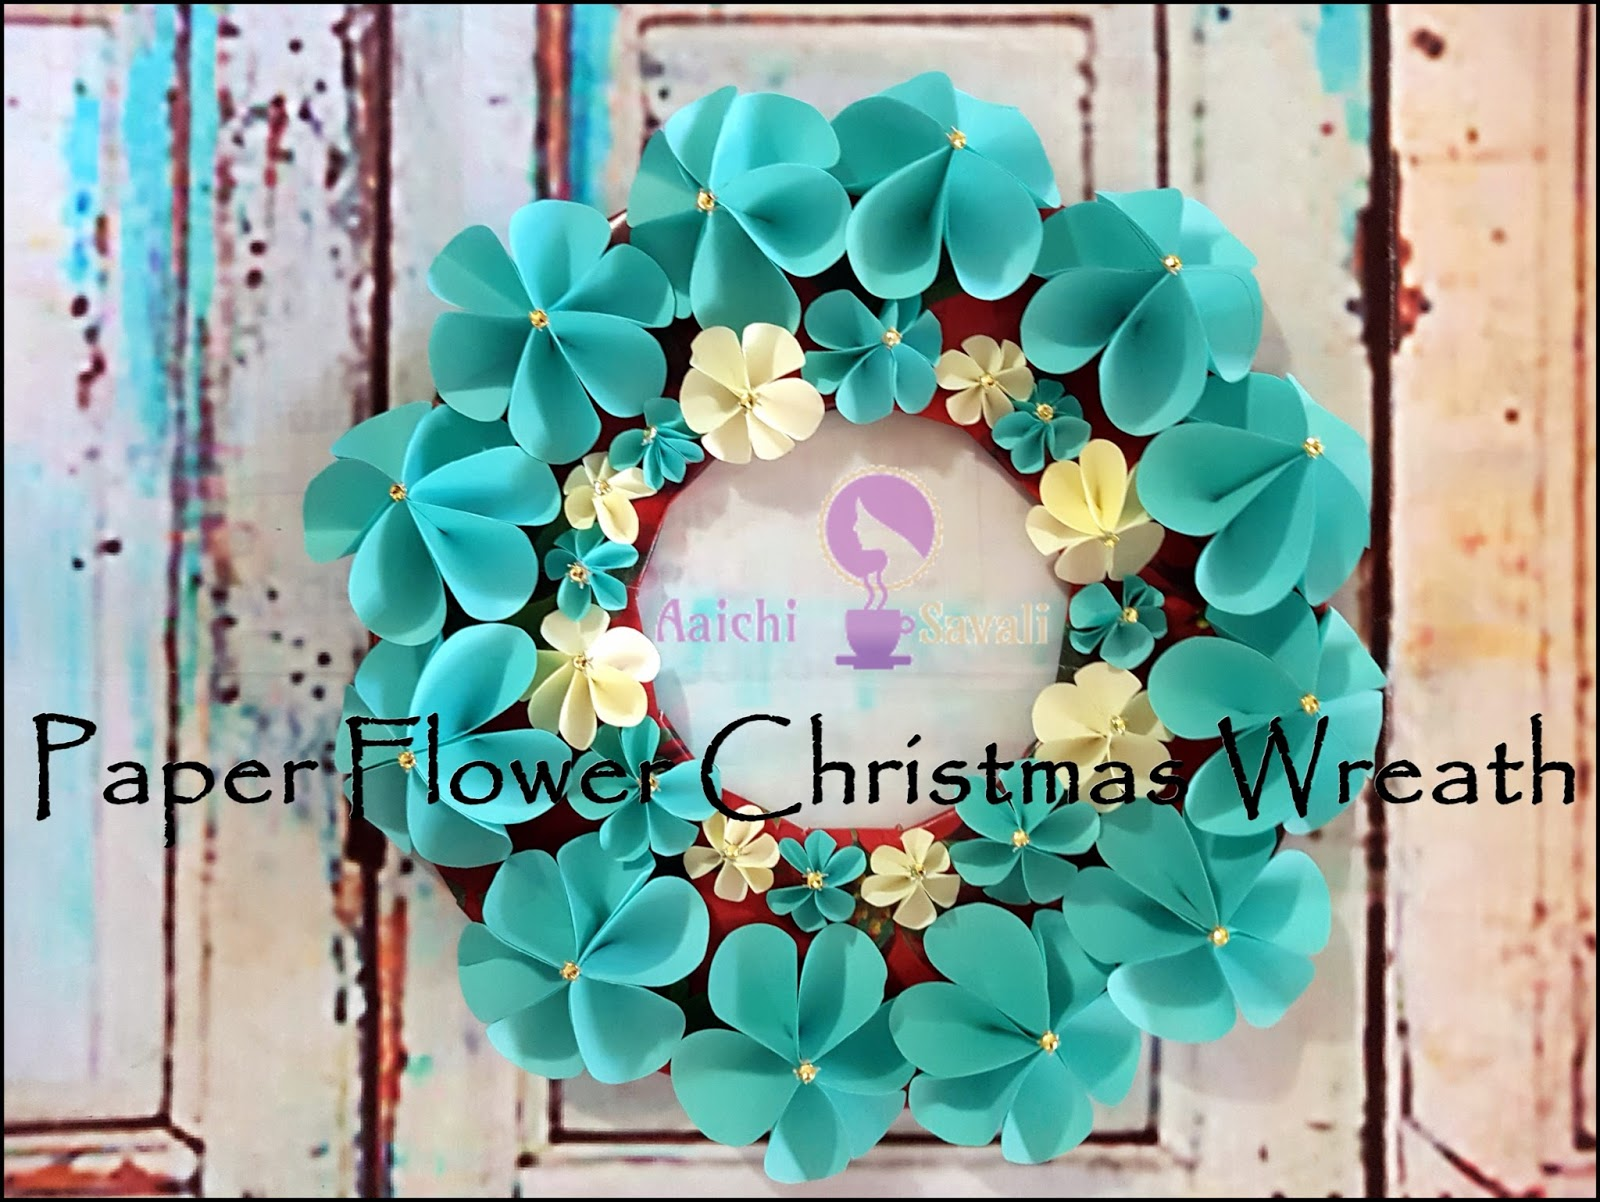 DIY Paper Flower Christmas Wreath - Aaichi Savali